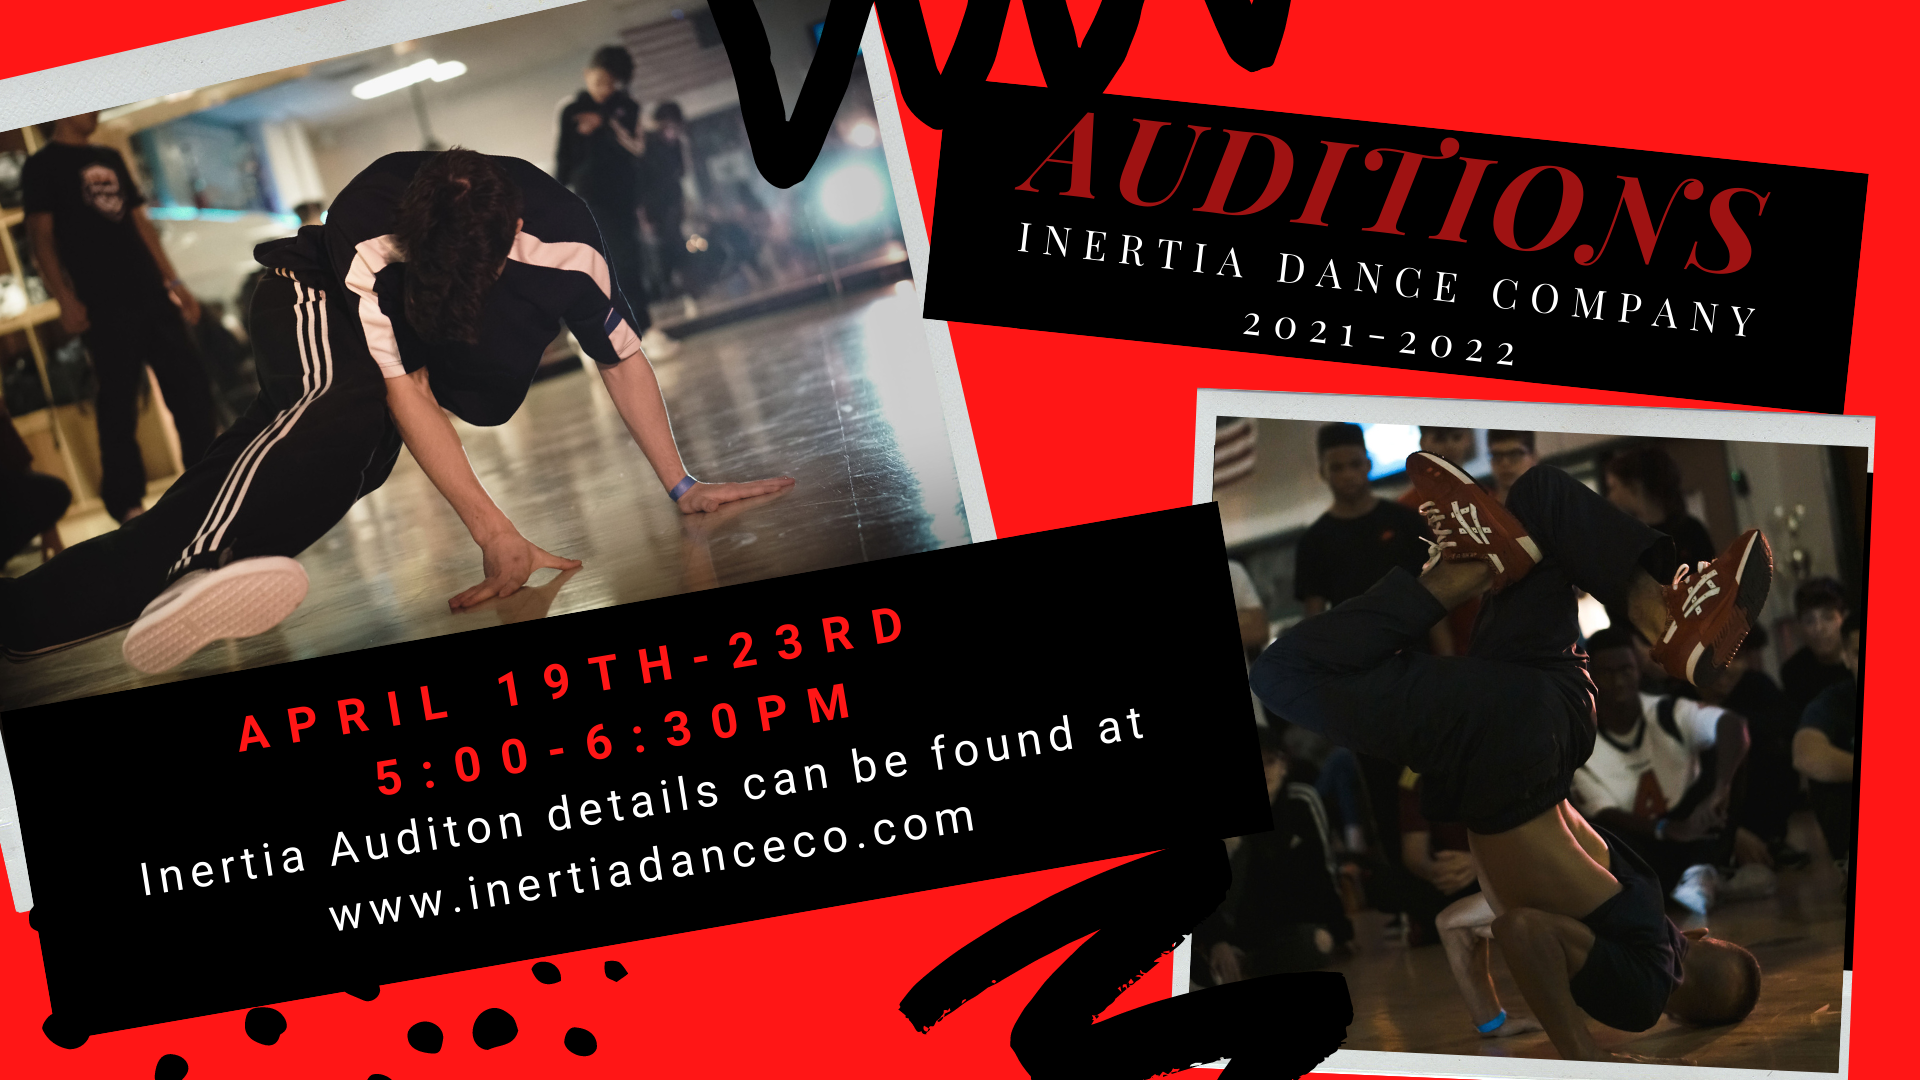 Inertia Dance Company Auditions